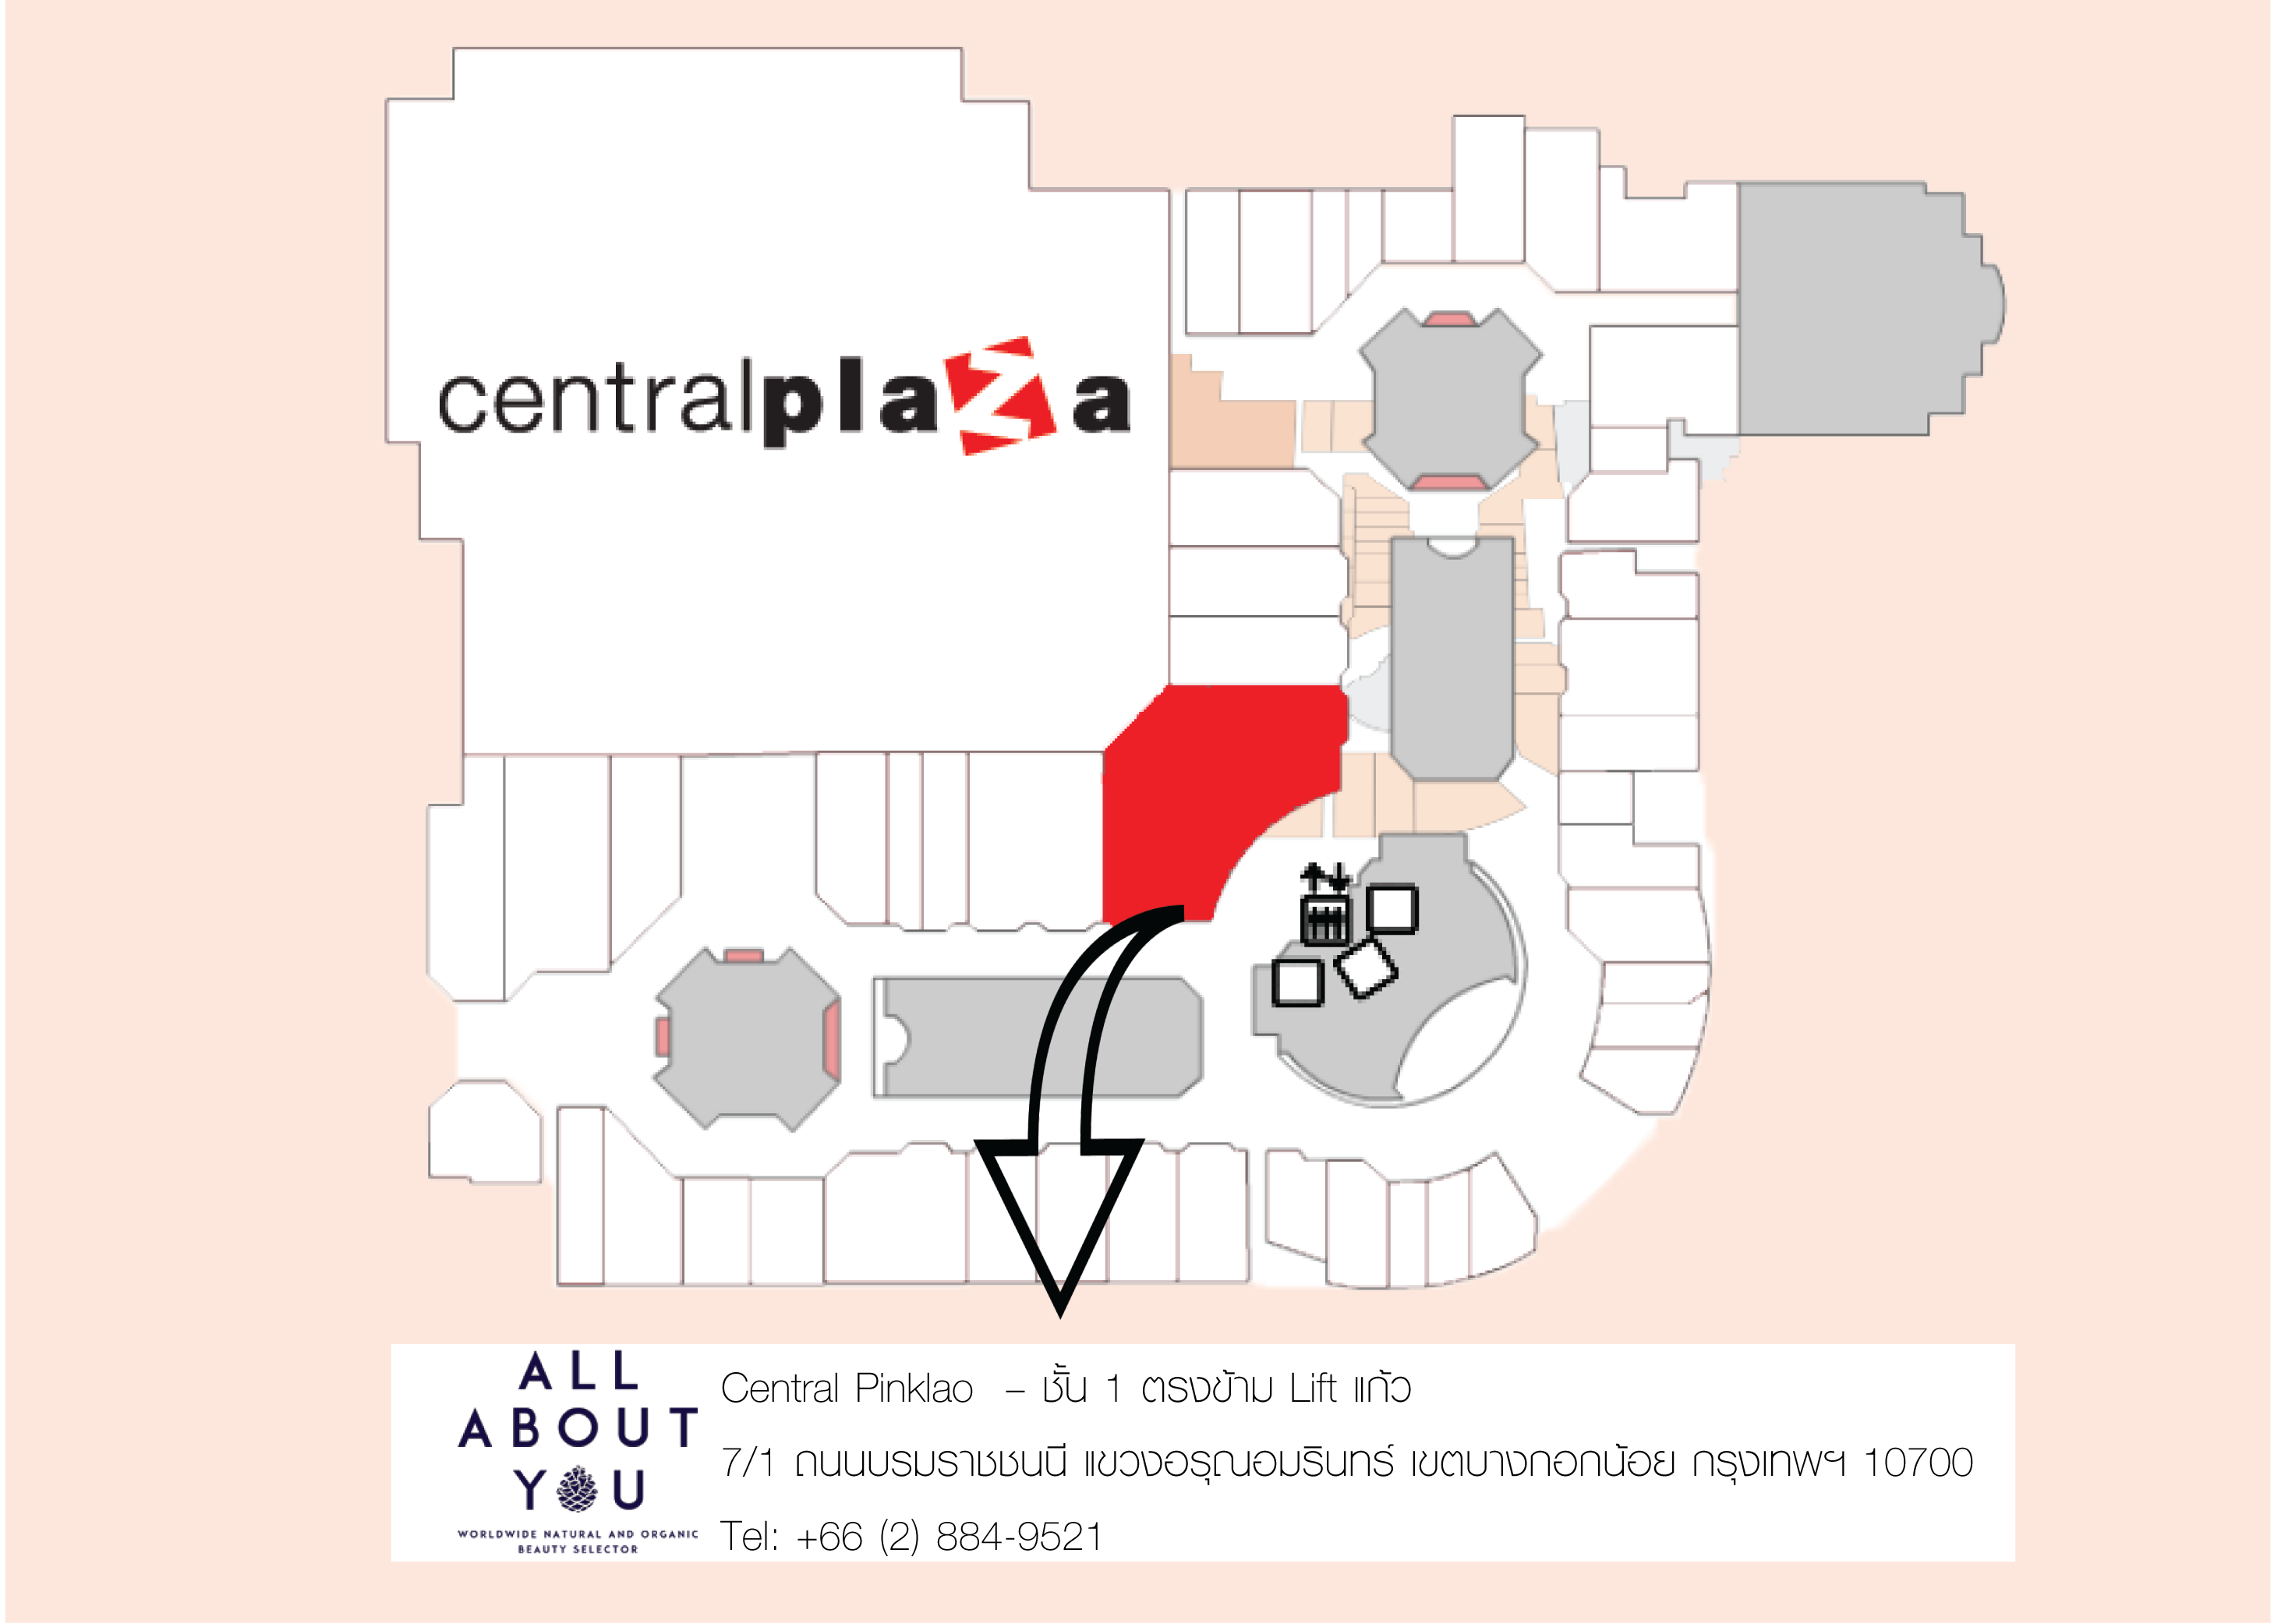 AAU-Central Pinklao